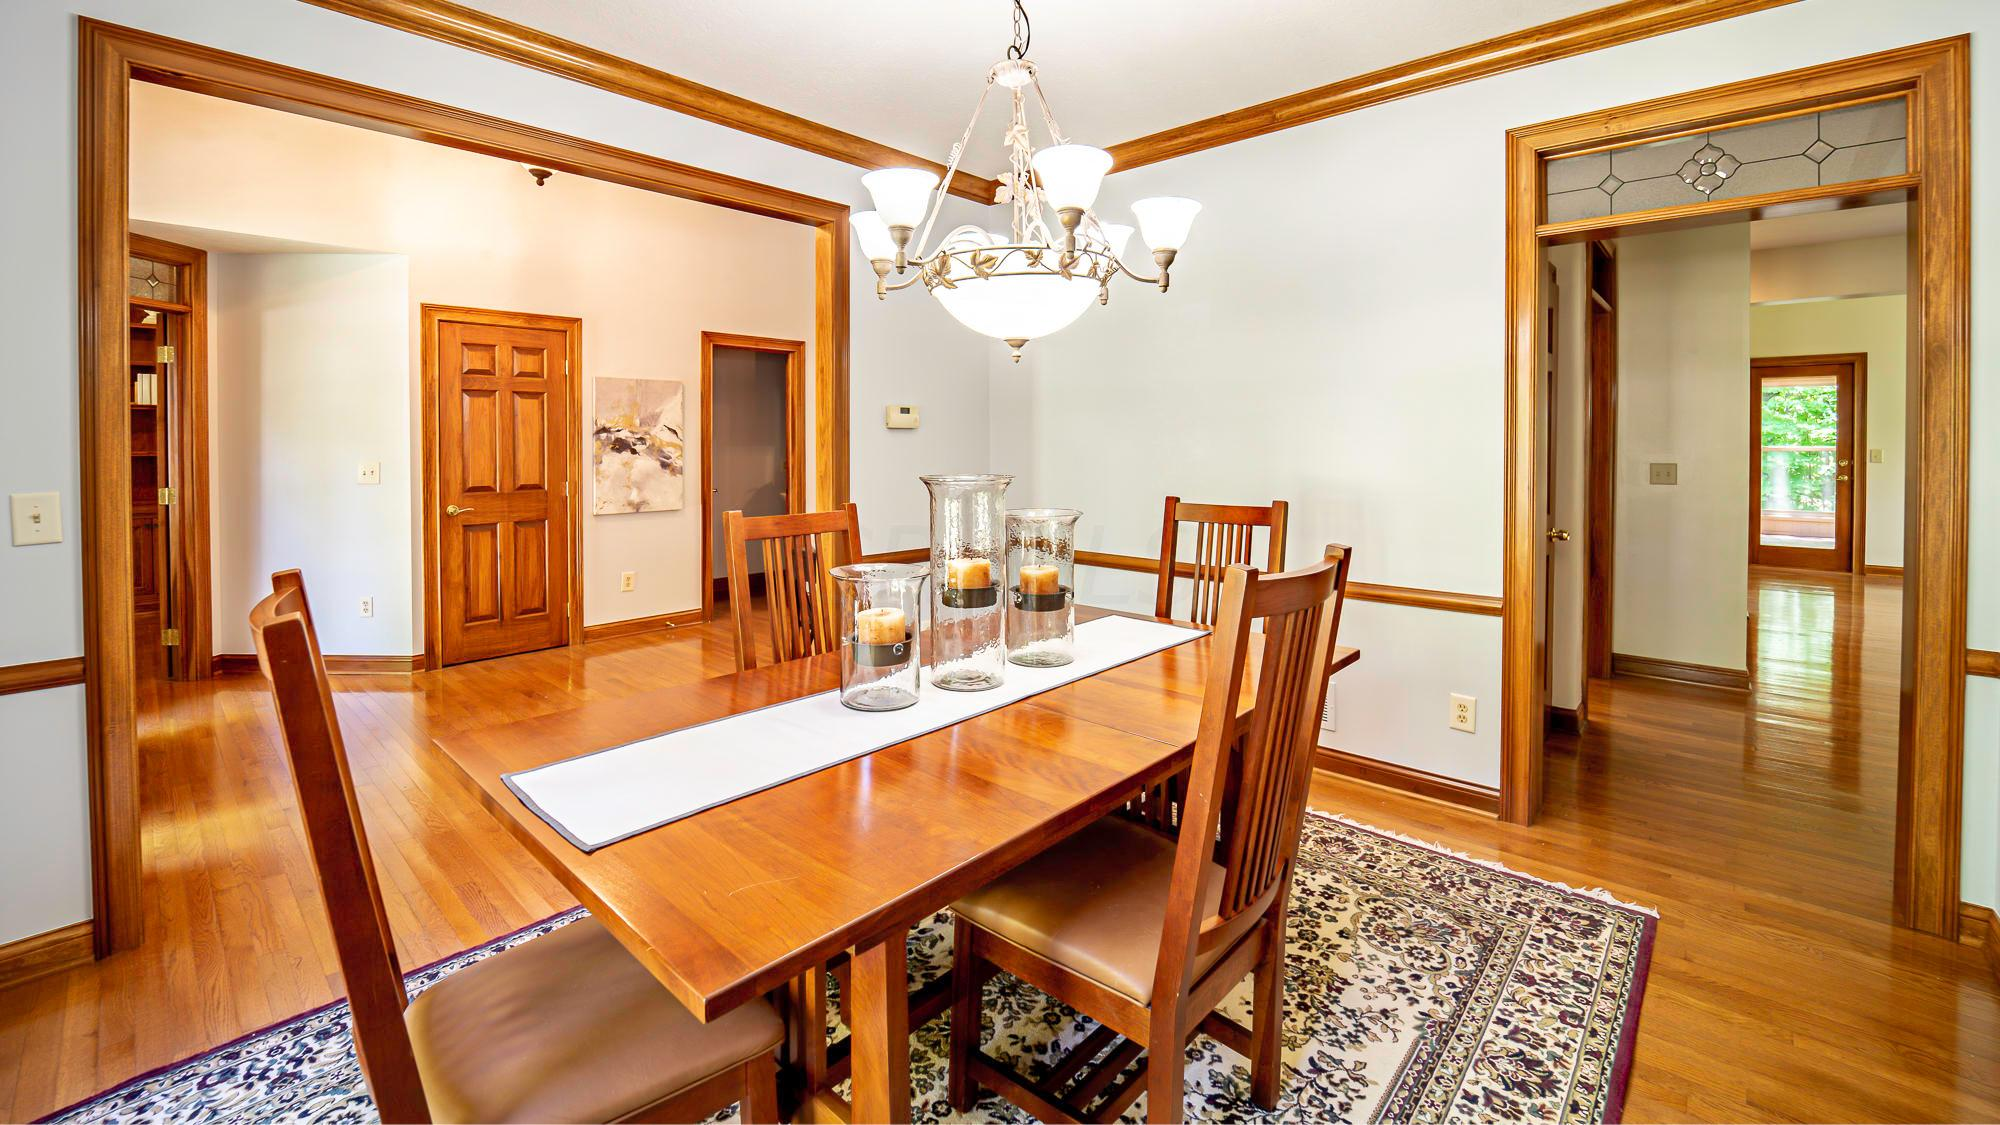 2636 Aikin Circle, Lewis Center, Ohio 43035, 4 Bedrooms Bedrooms, ,4 BathroomsBathrooms,Residential,For Sale,Aikin,220016105